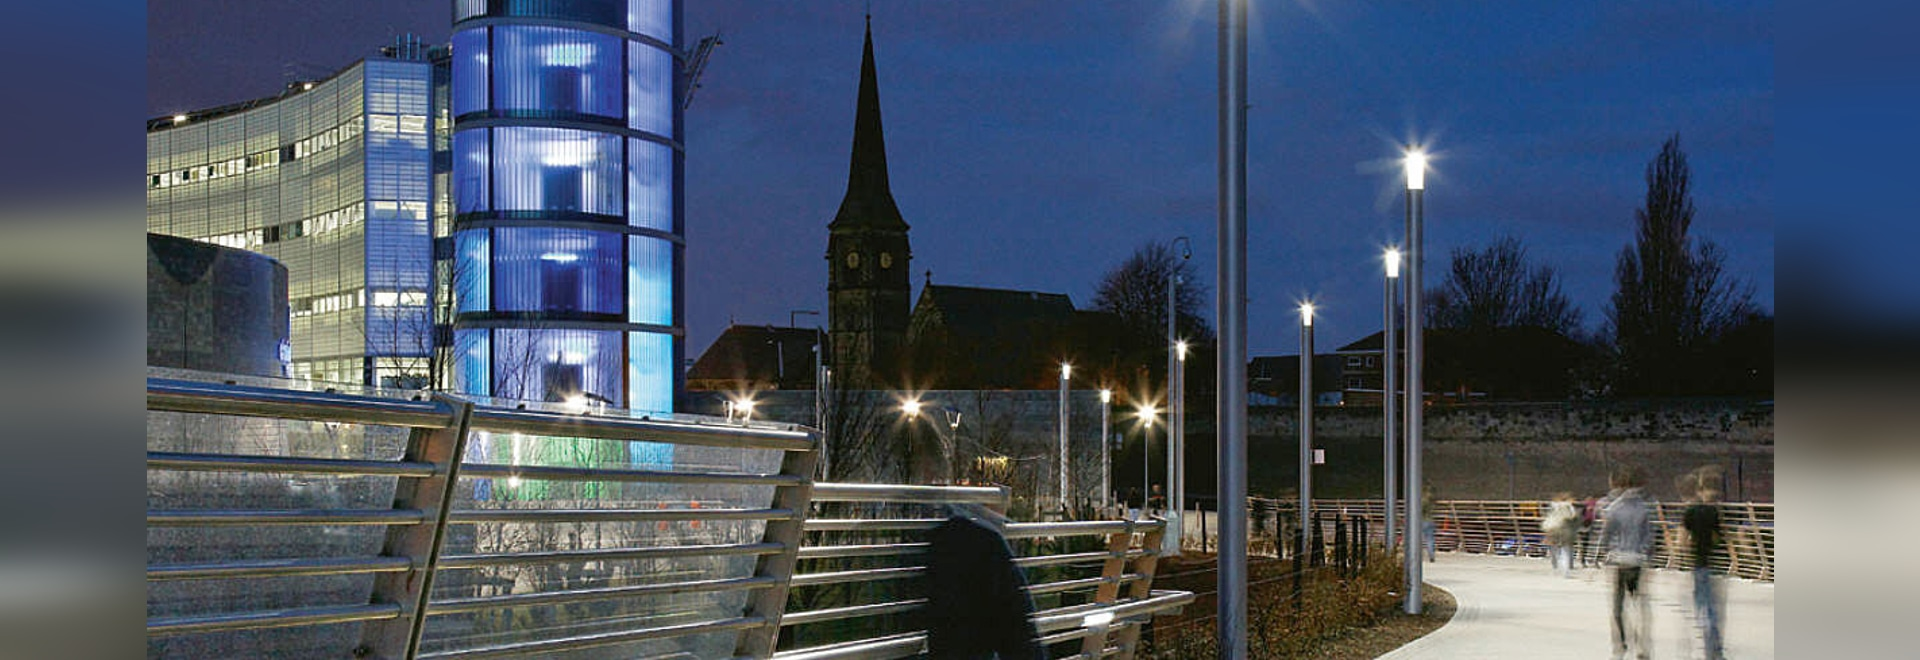 CITY ELEMENTS, More than just a luminaire